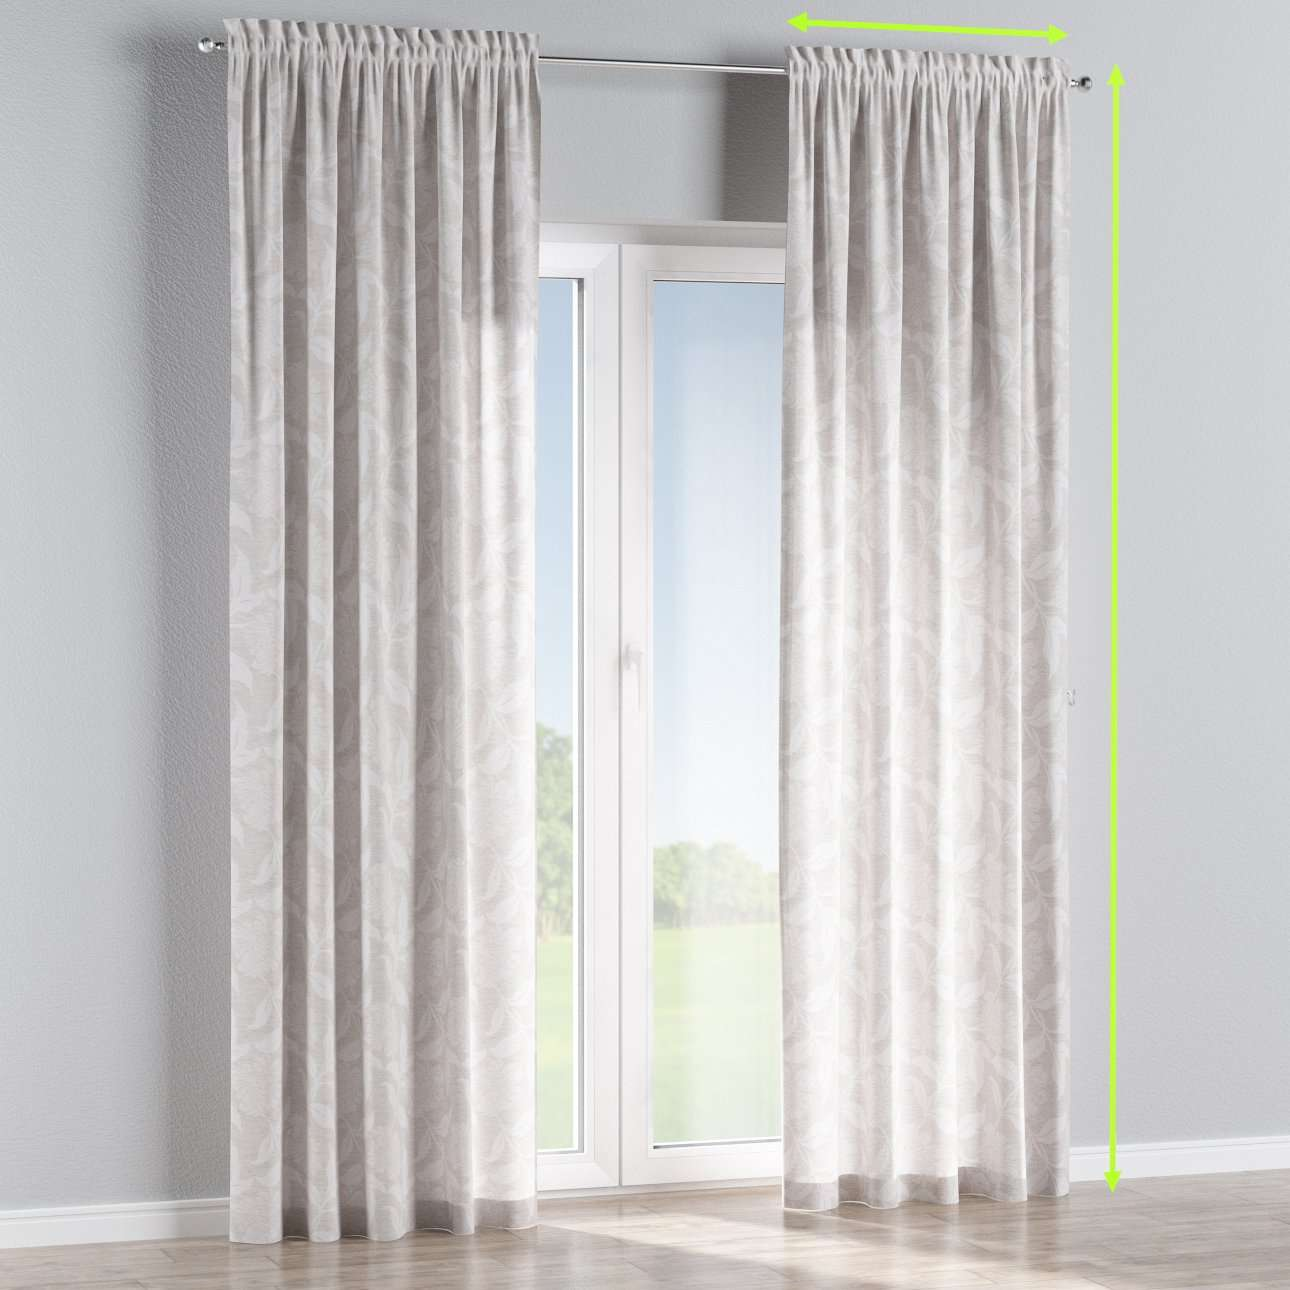 Slot and frill lined curtains in collection Venice, fabric: 140-51